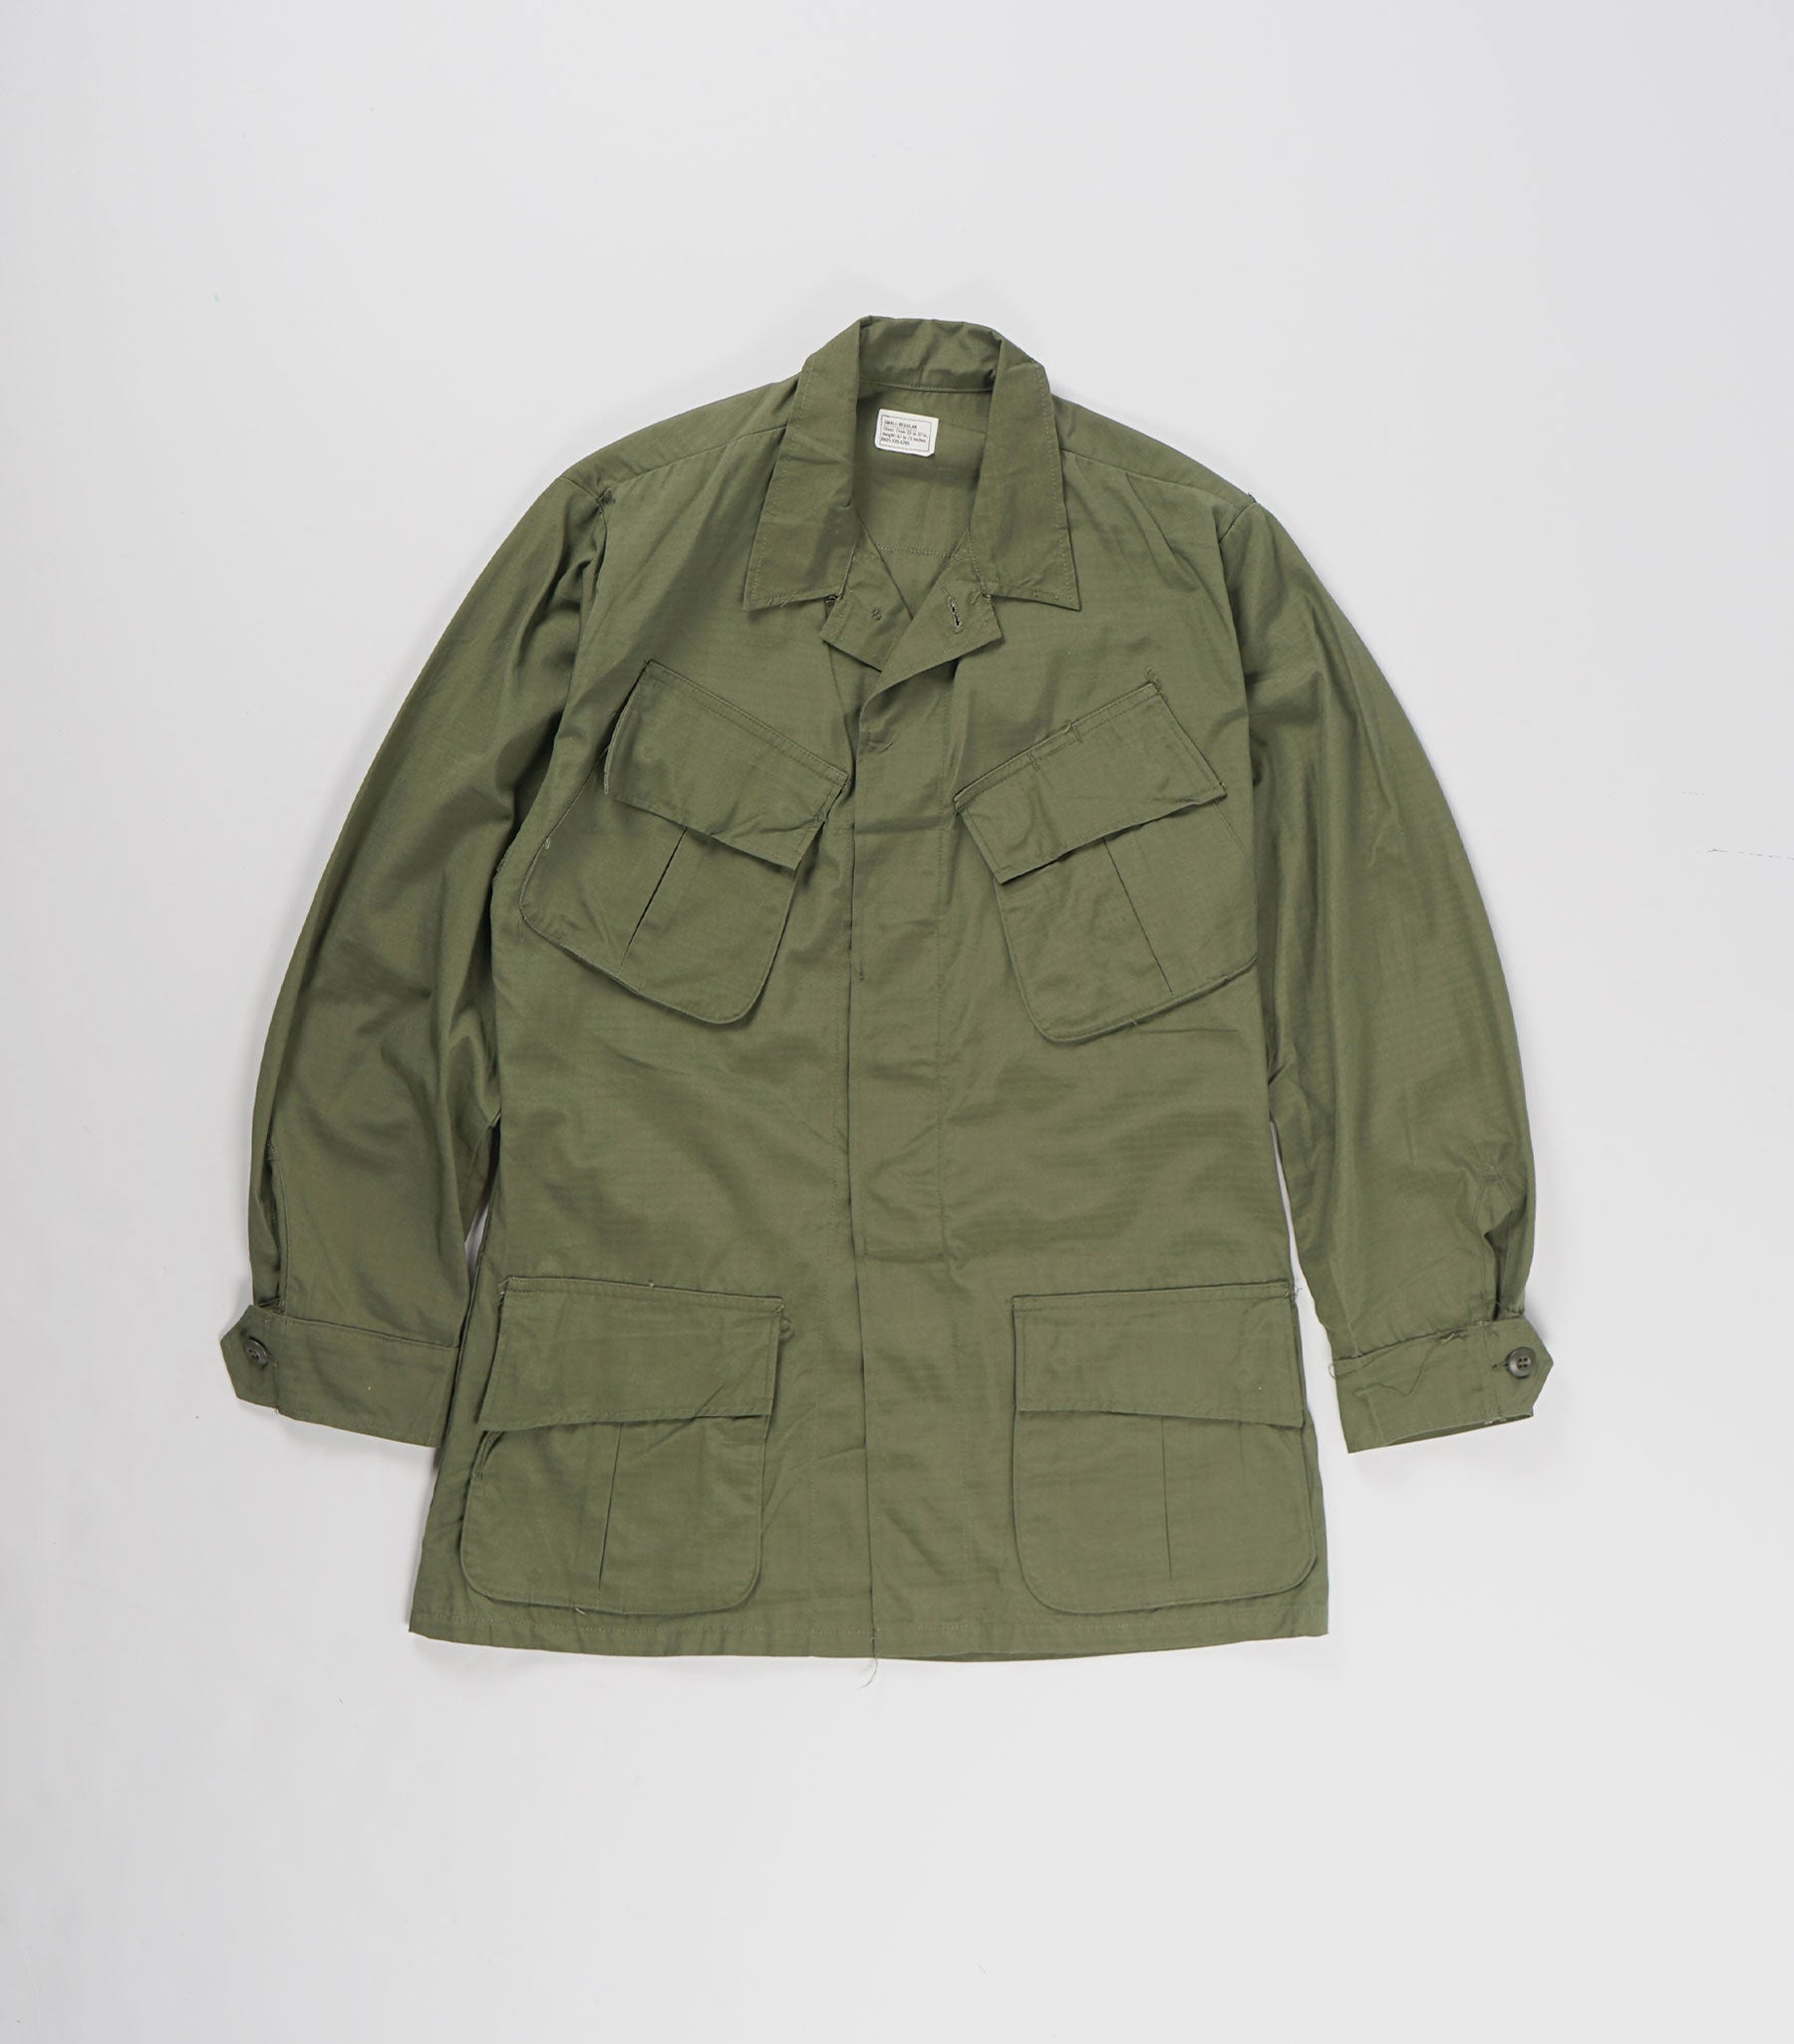 1960's U.S. Army Jungle Fatigue Jacket